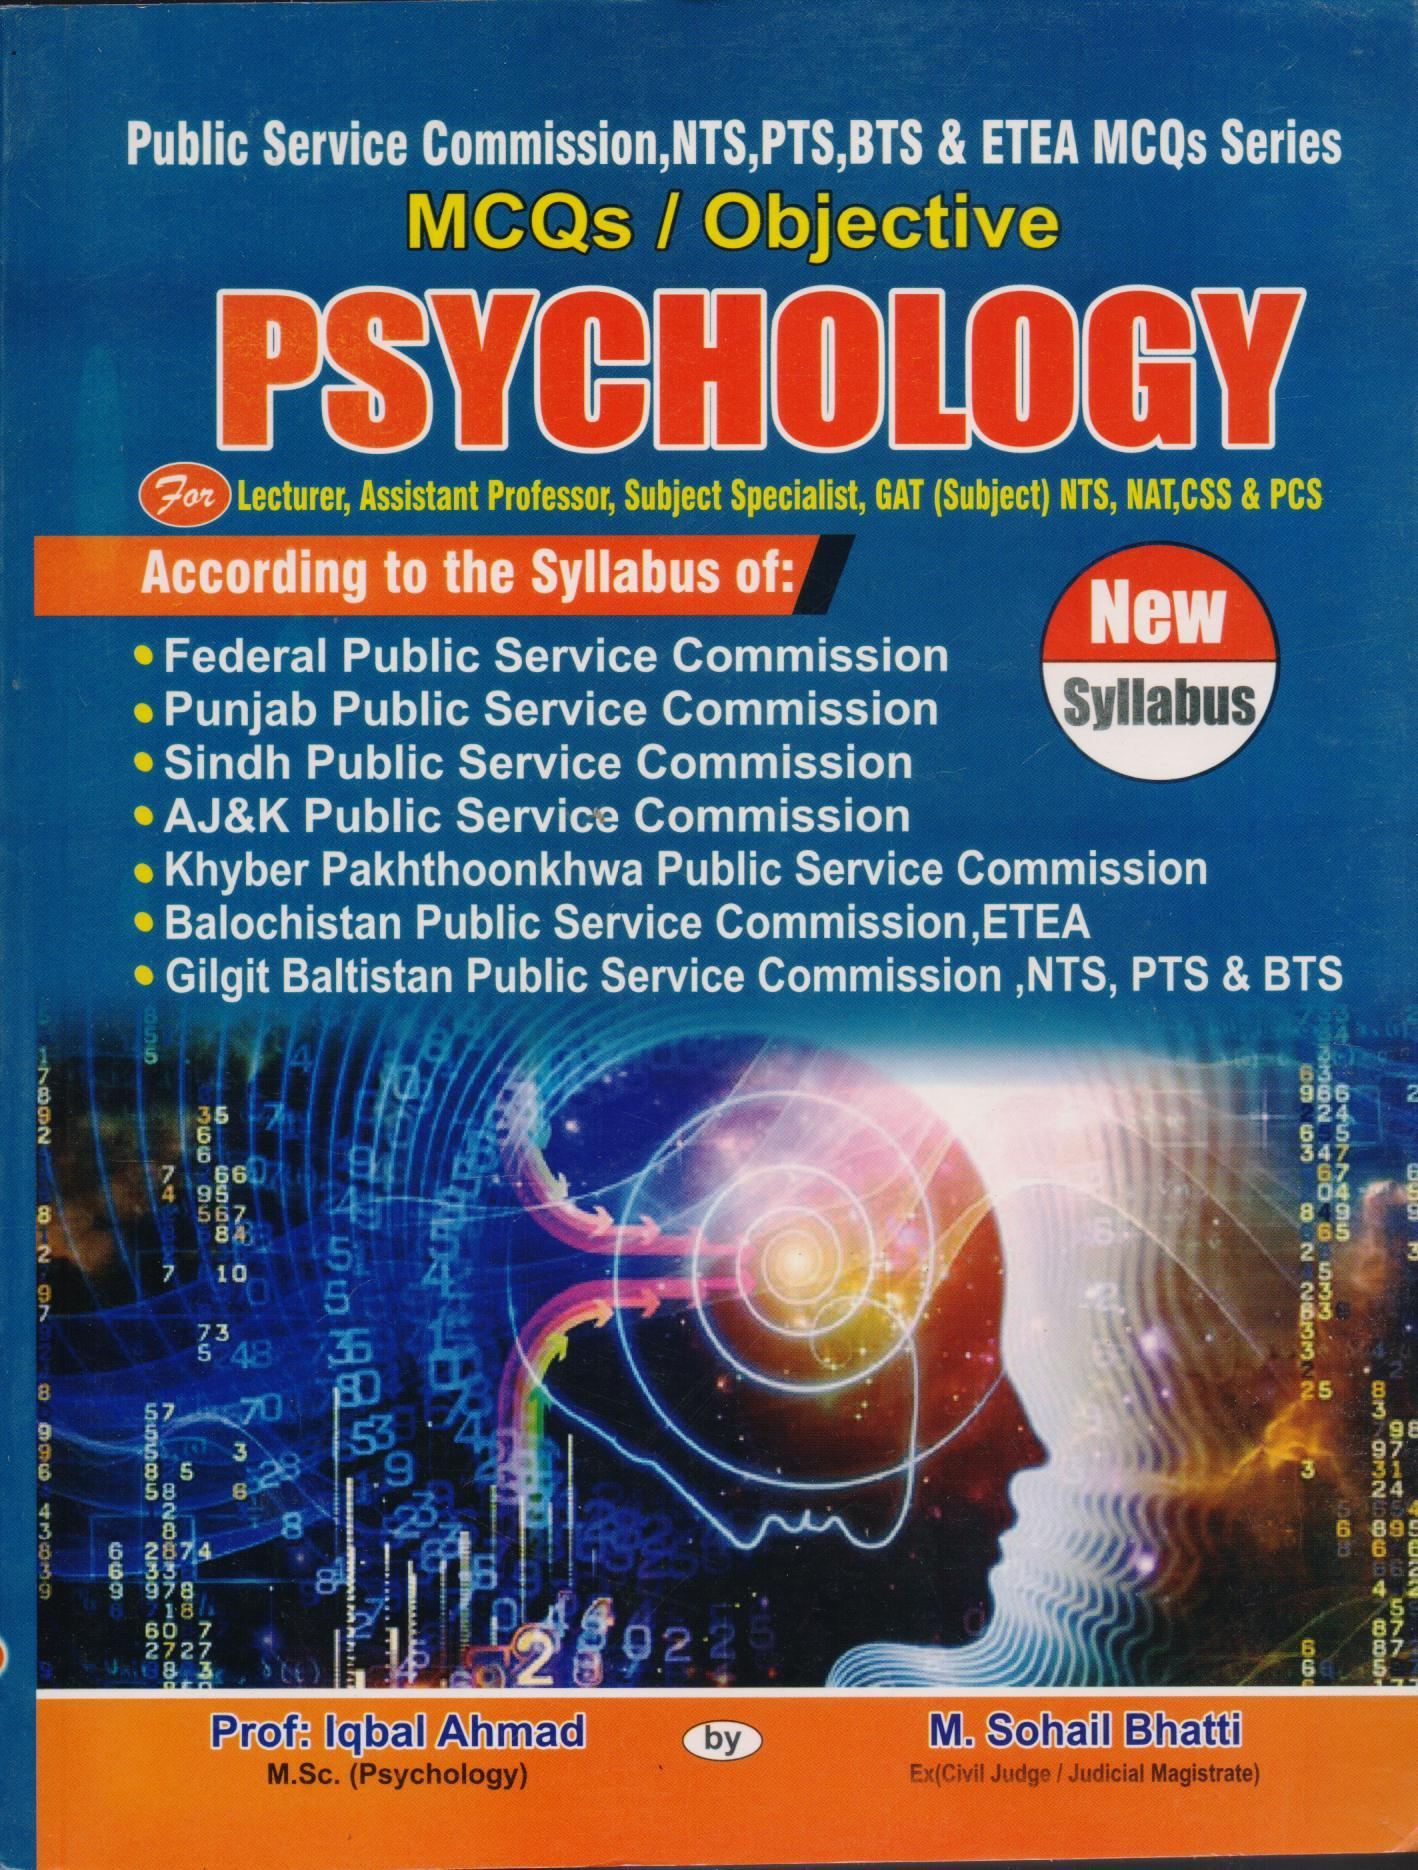 MCQs/Objective Psychology for Lecturer,Assistant Professor,Subject  Specialist, Test Guide, CSS & PCS by Muhammad Sohail bhatti